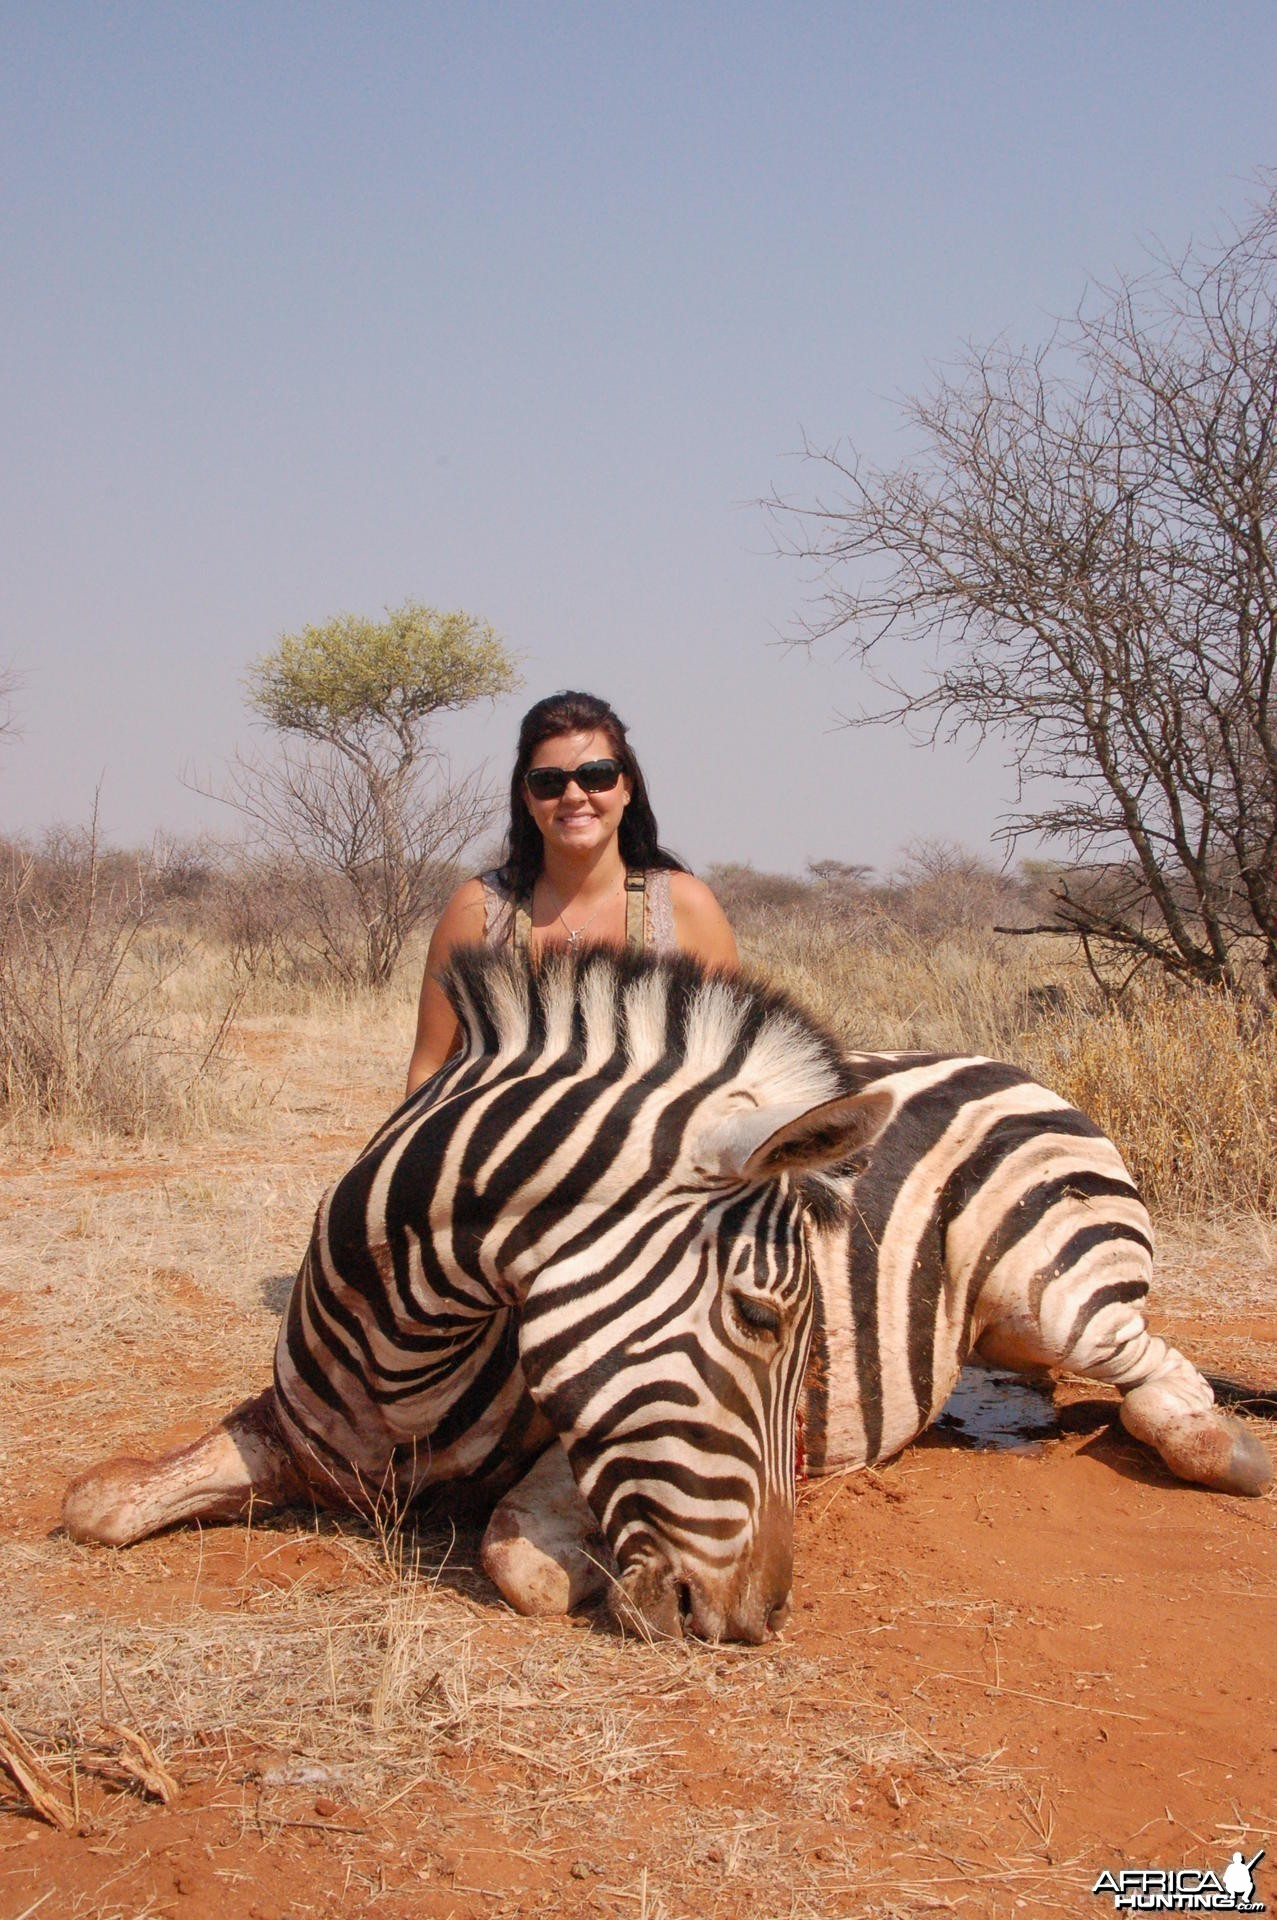 Burchell's Zebra hunted in Namibia